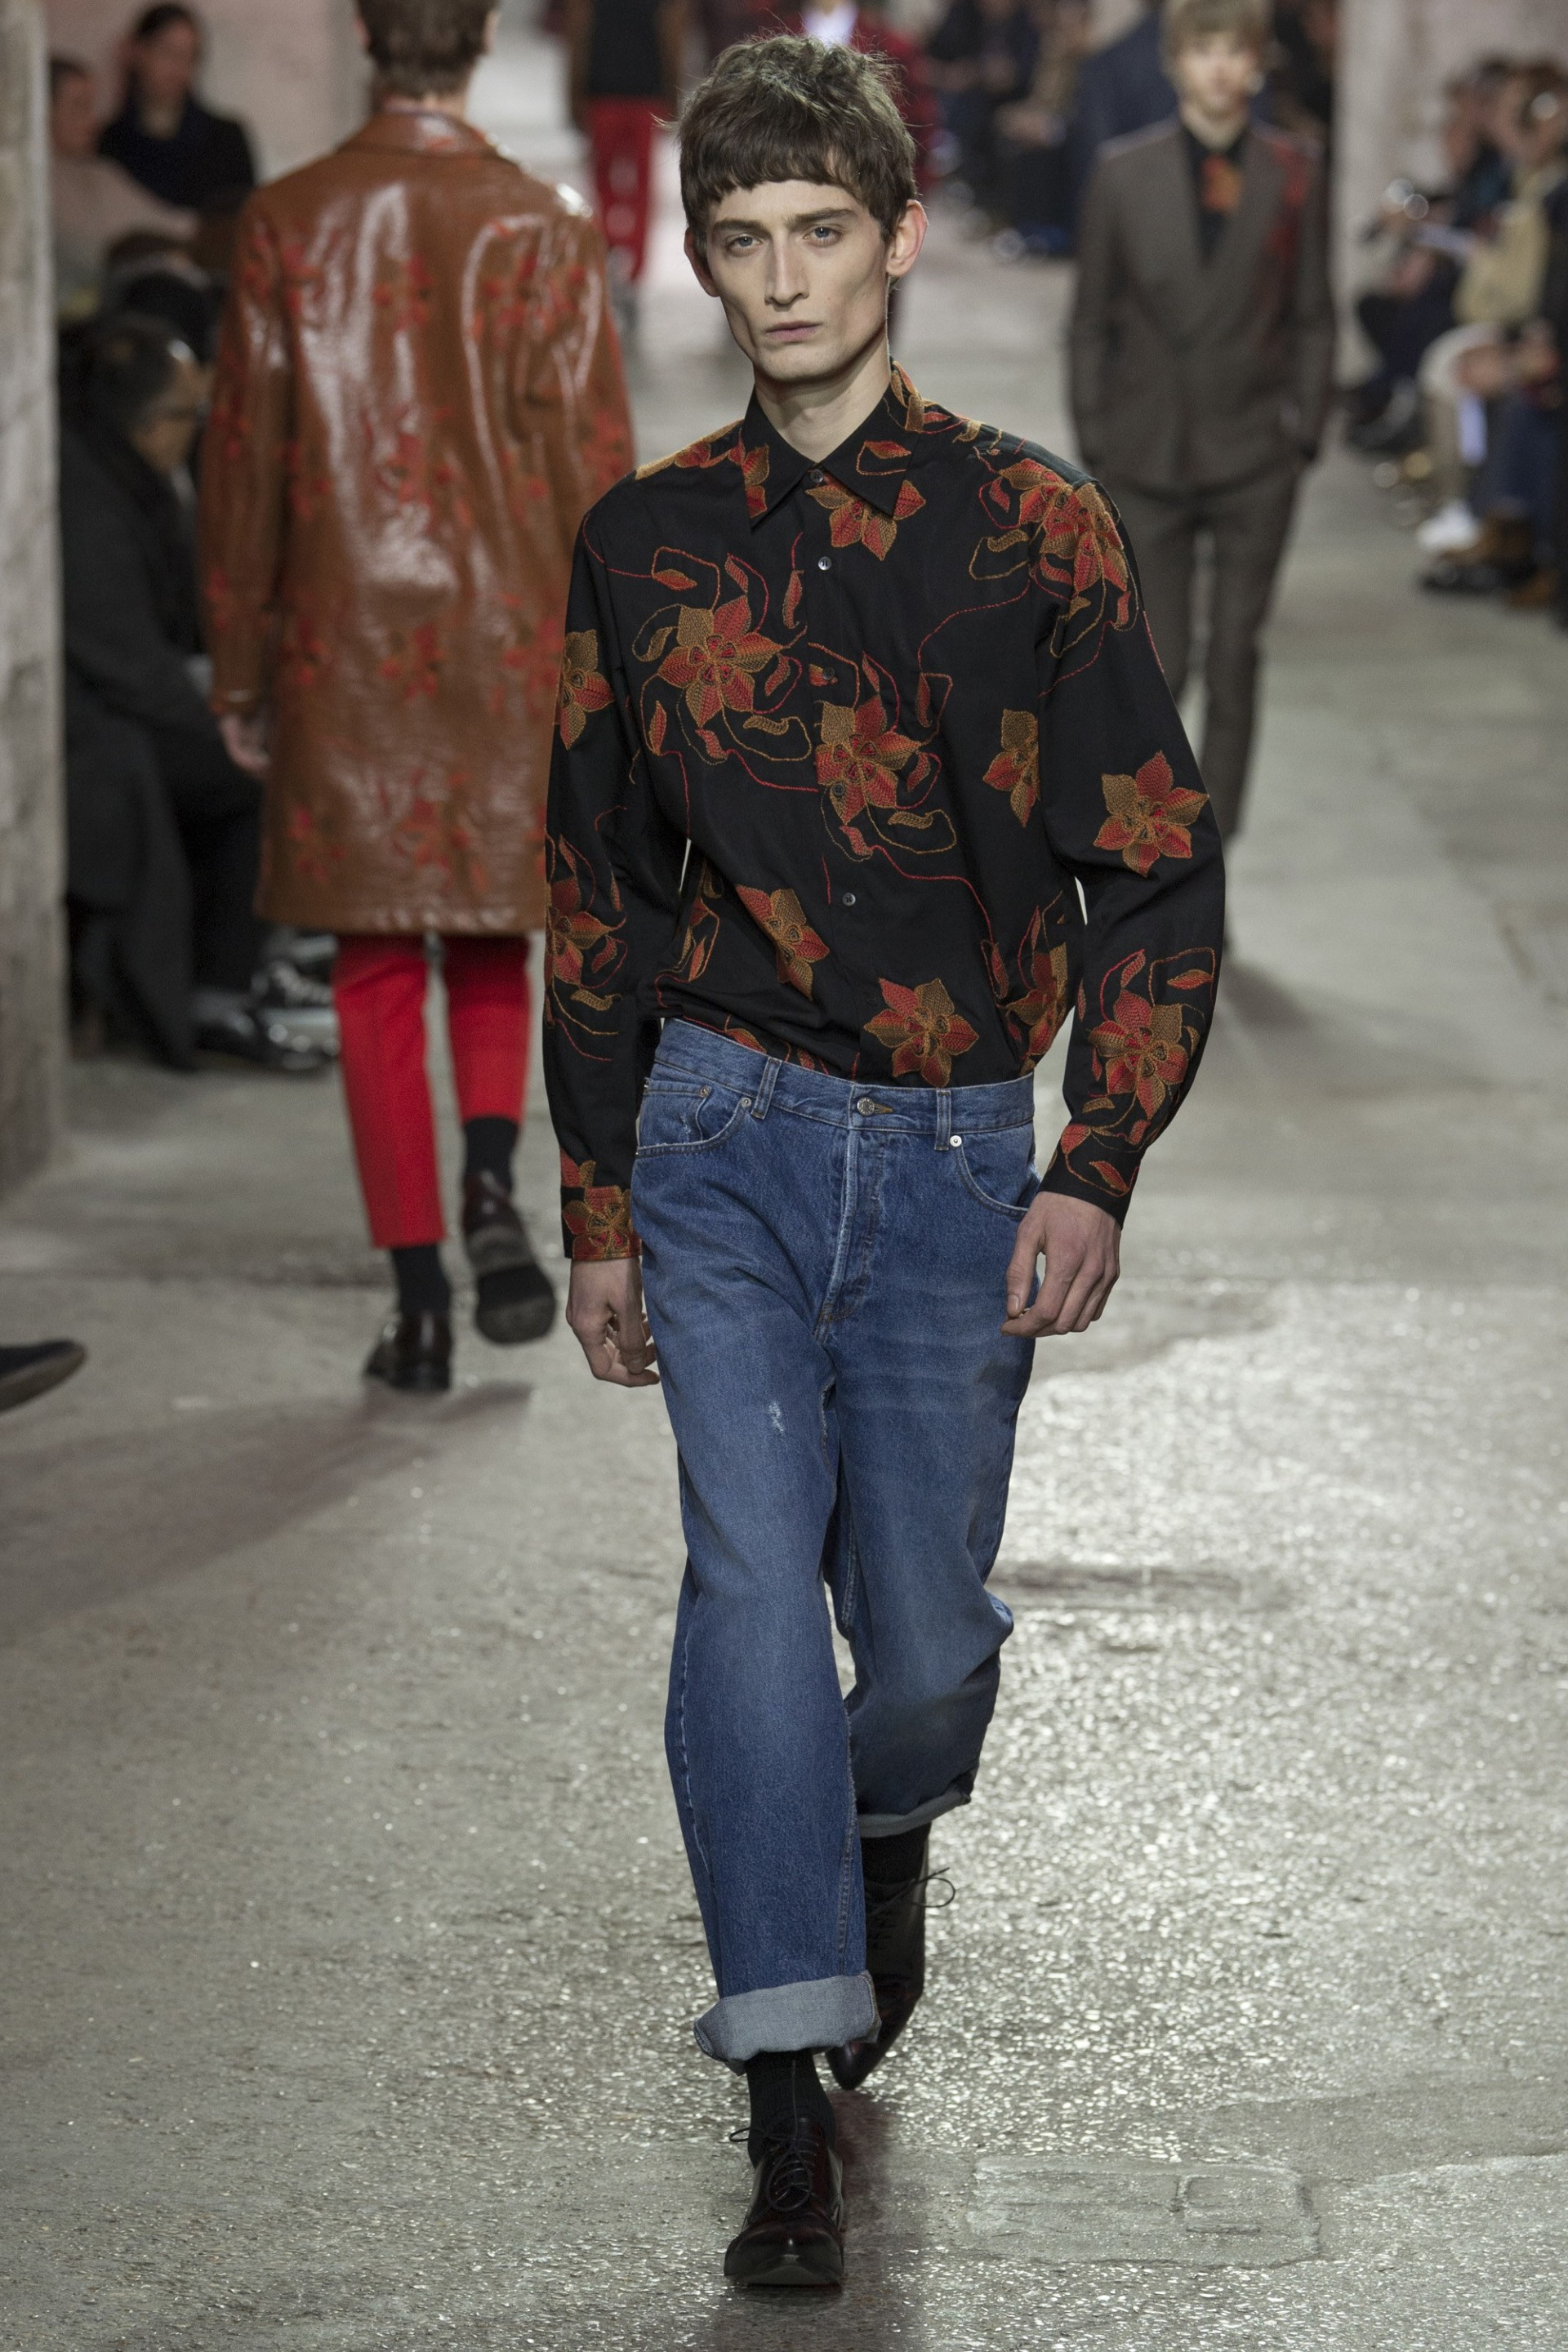 Percevalties Paris Menswear Fashion Week : les essentiels partie 1